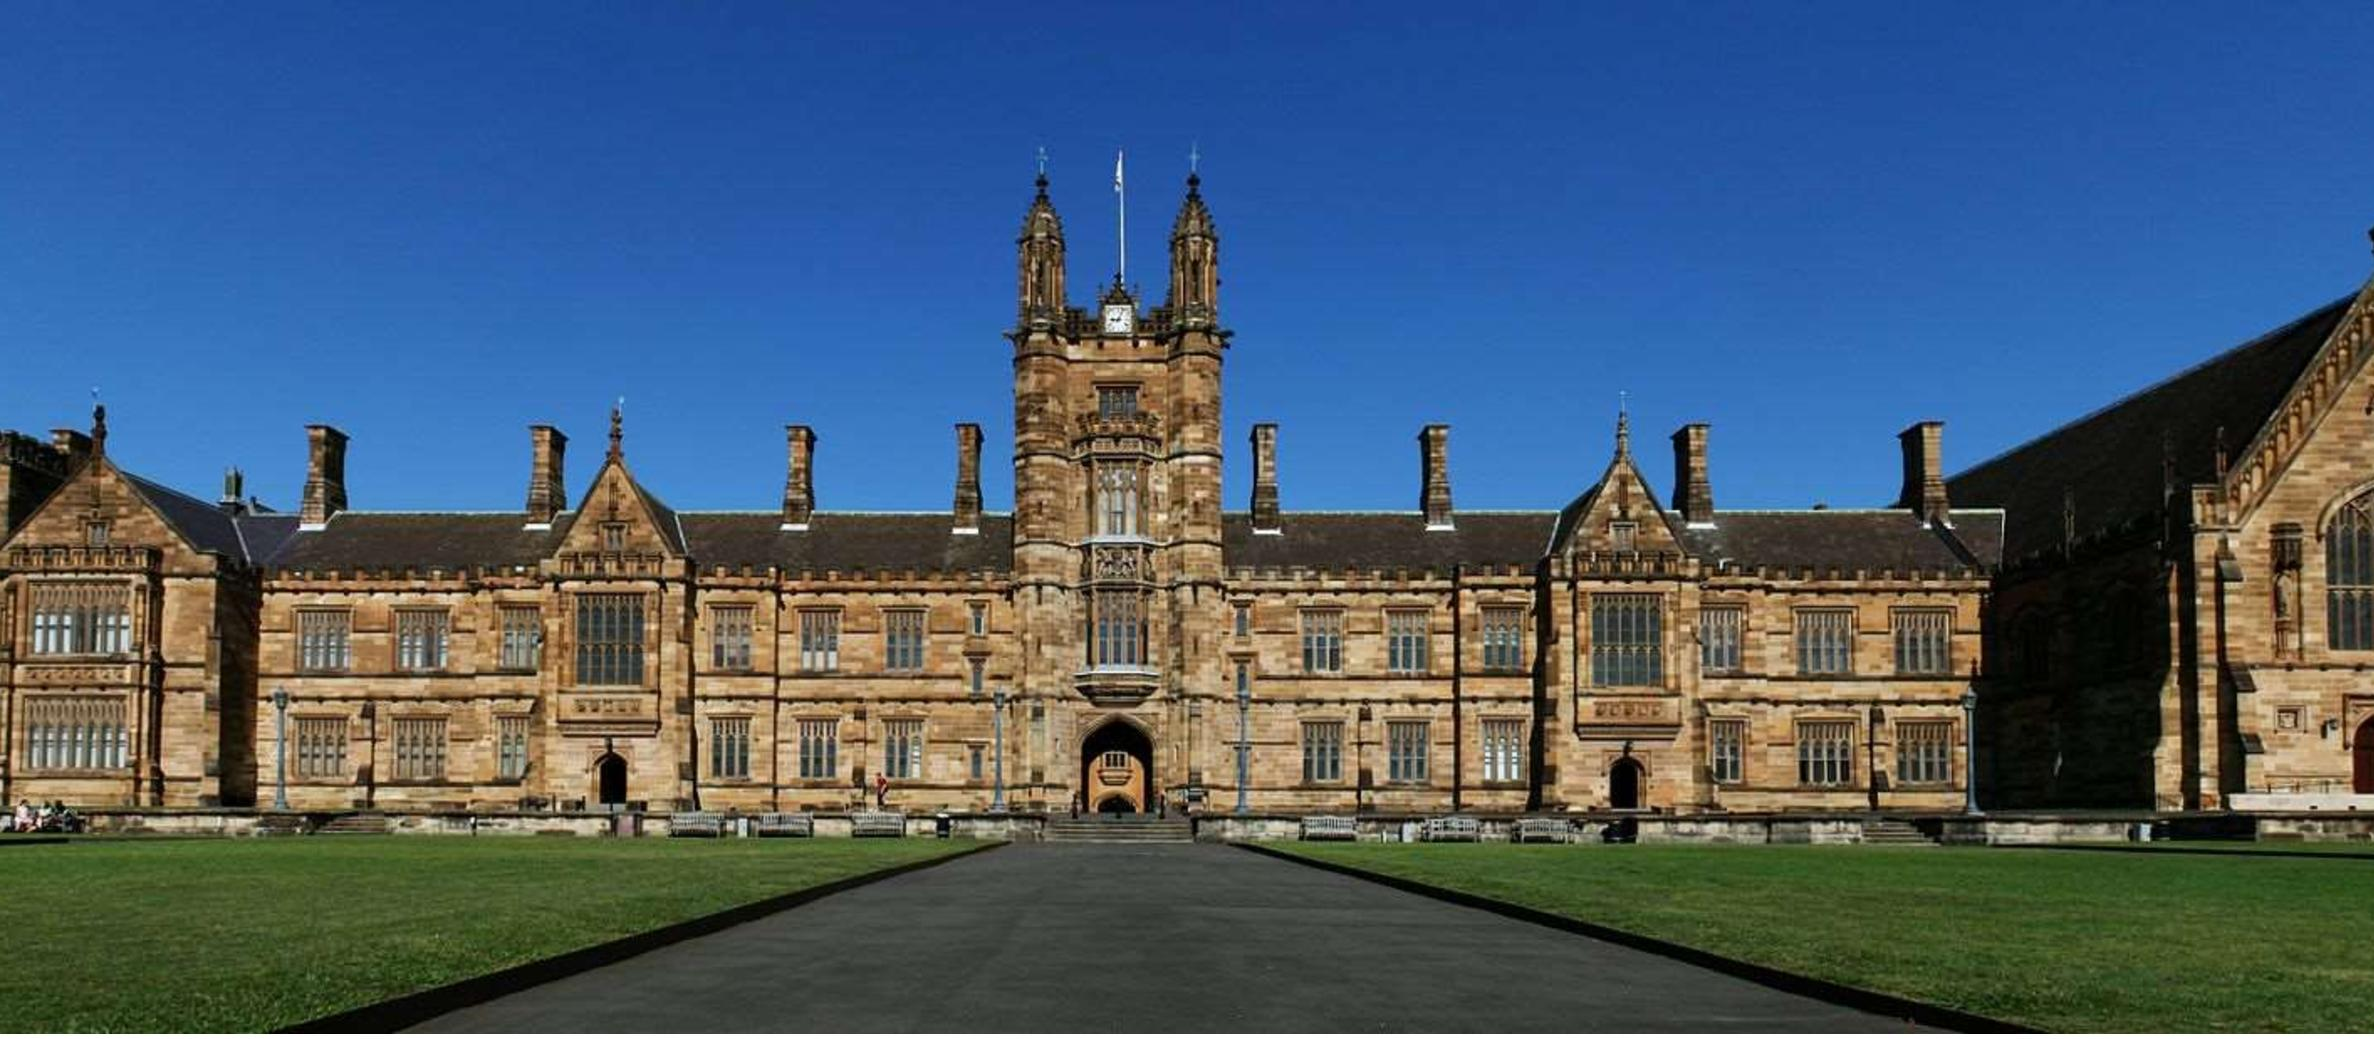 University of Sydney fires controversial academic over image of Swastika on Israeli flag